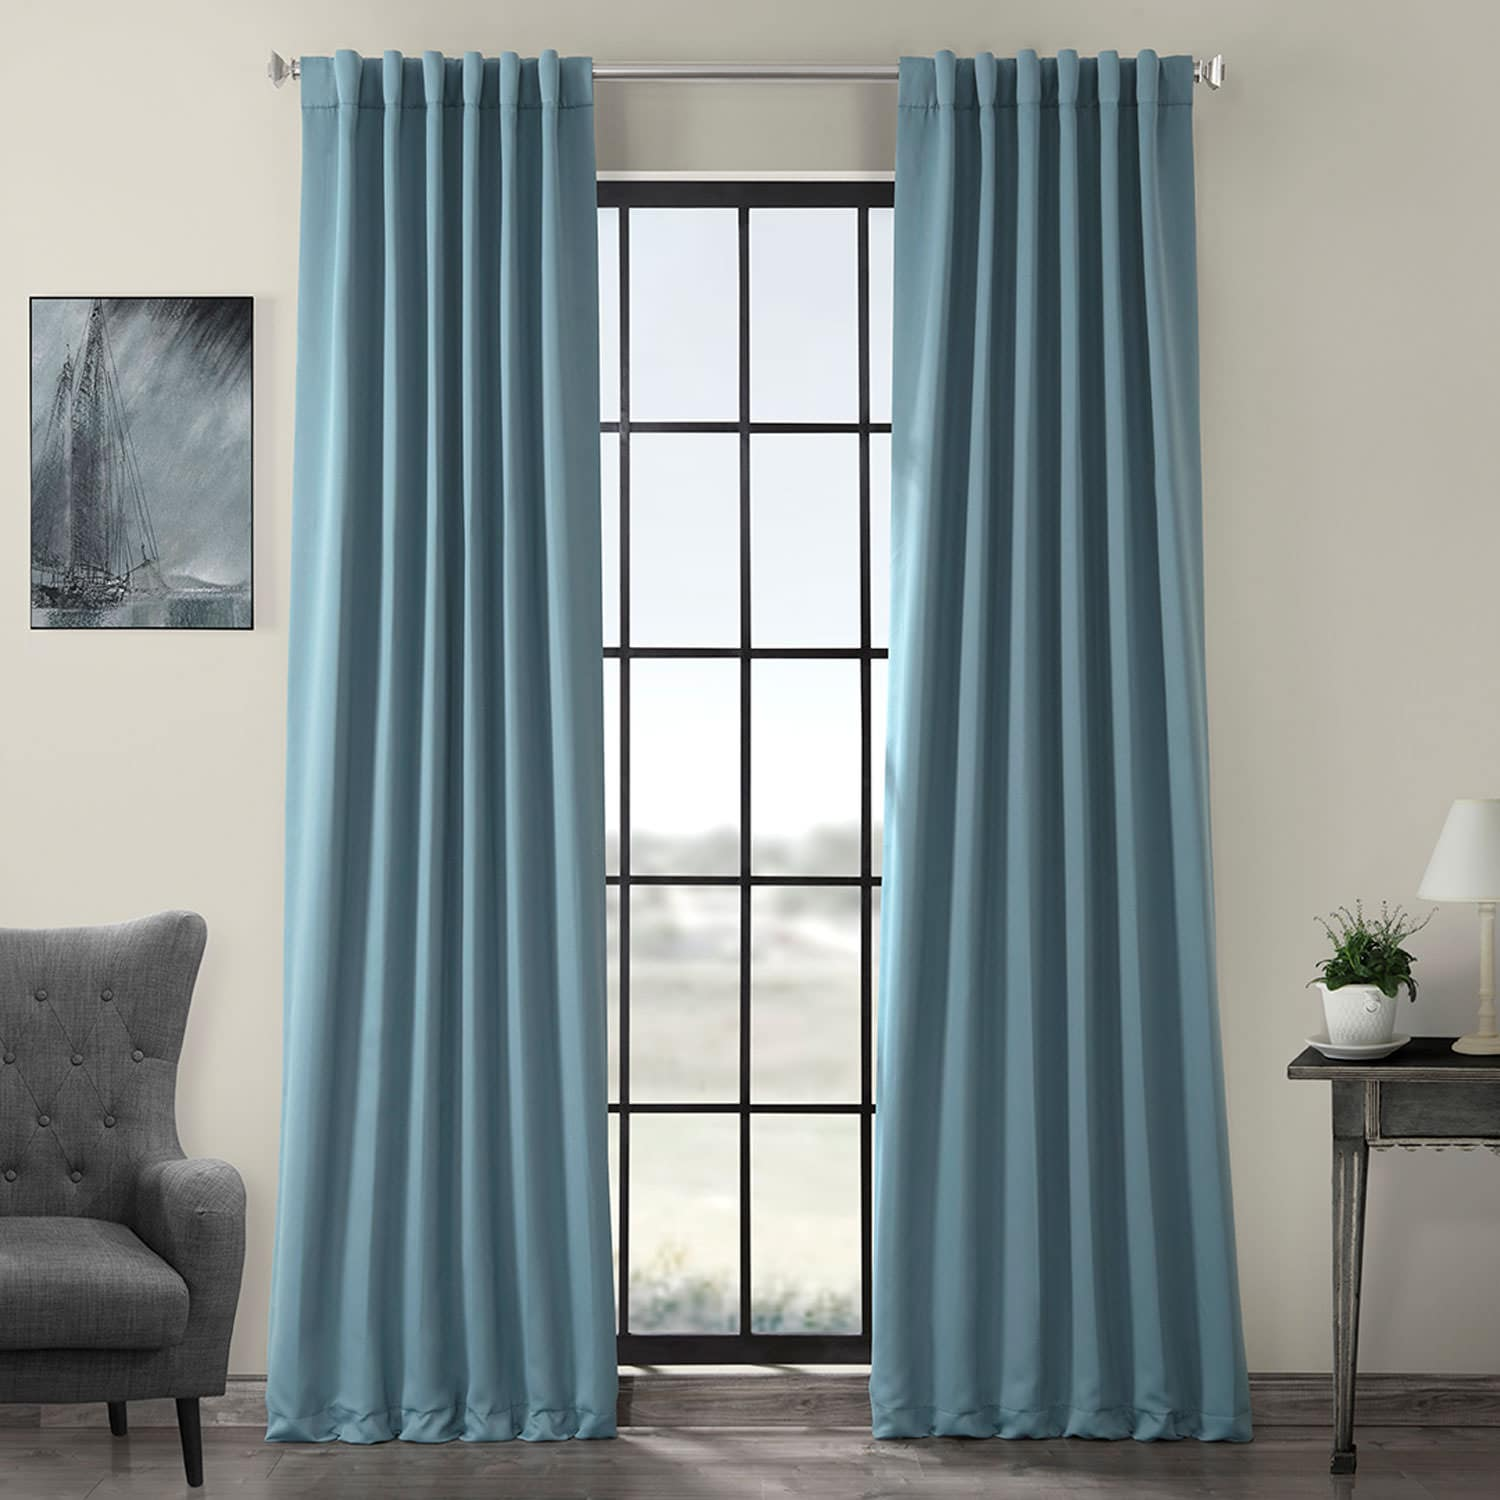 Dragonfly Teal Room Darkening Curtain